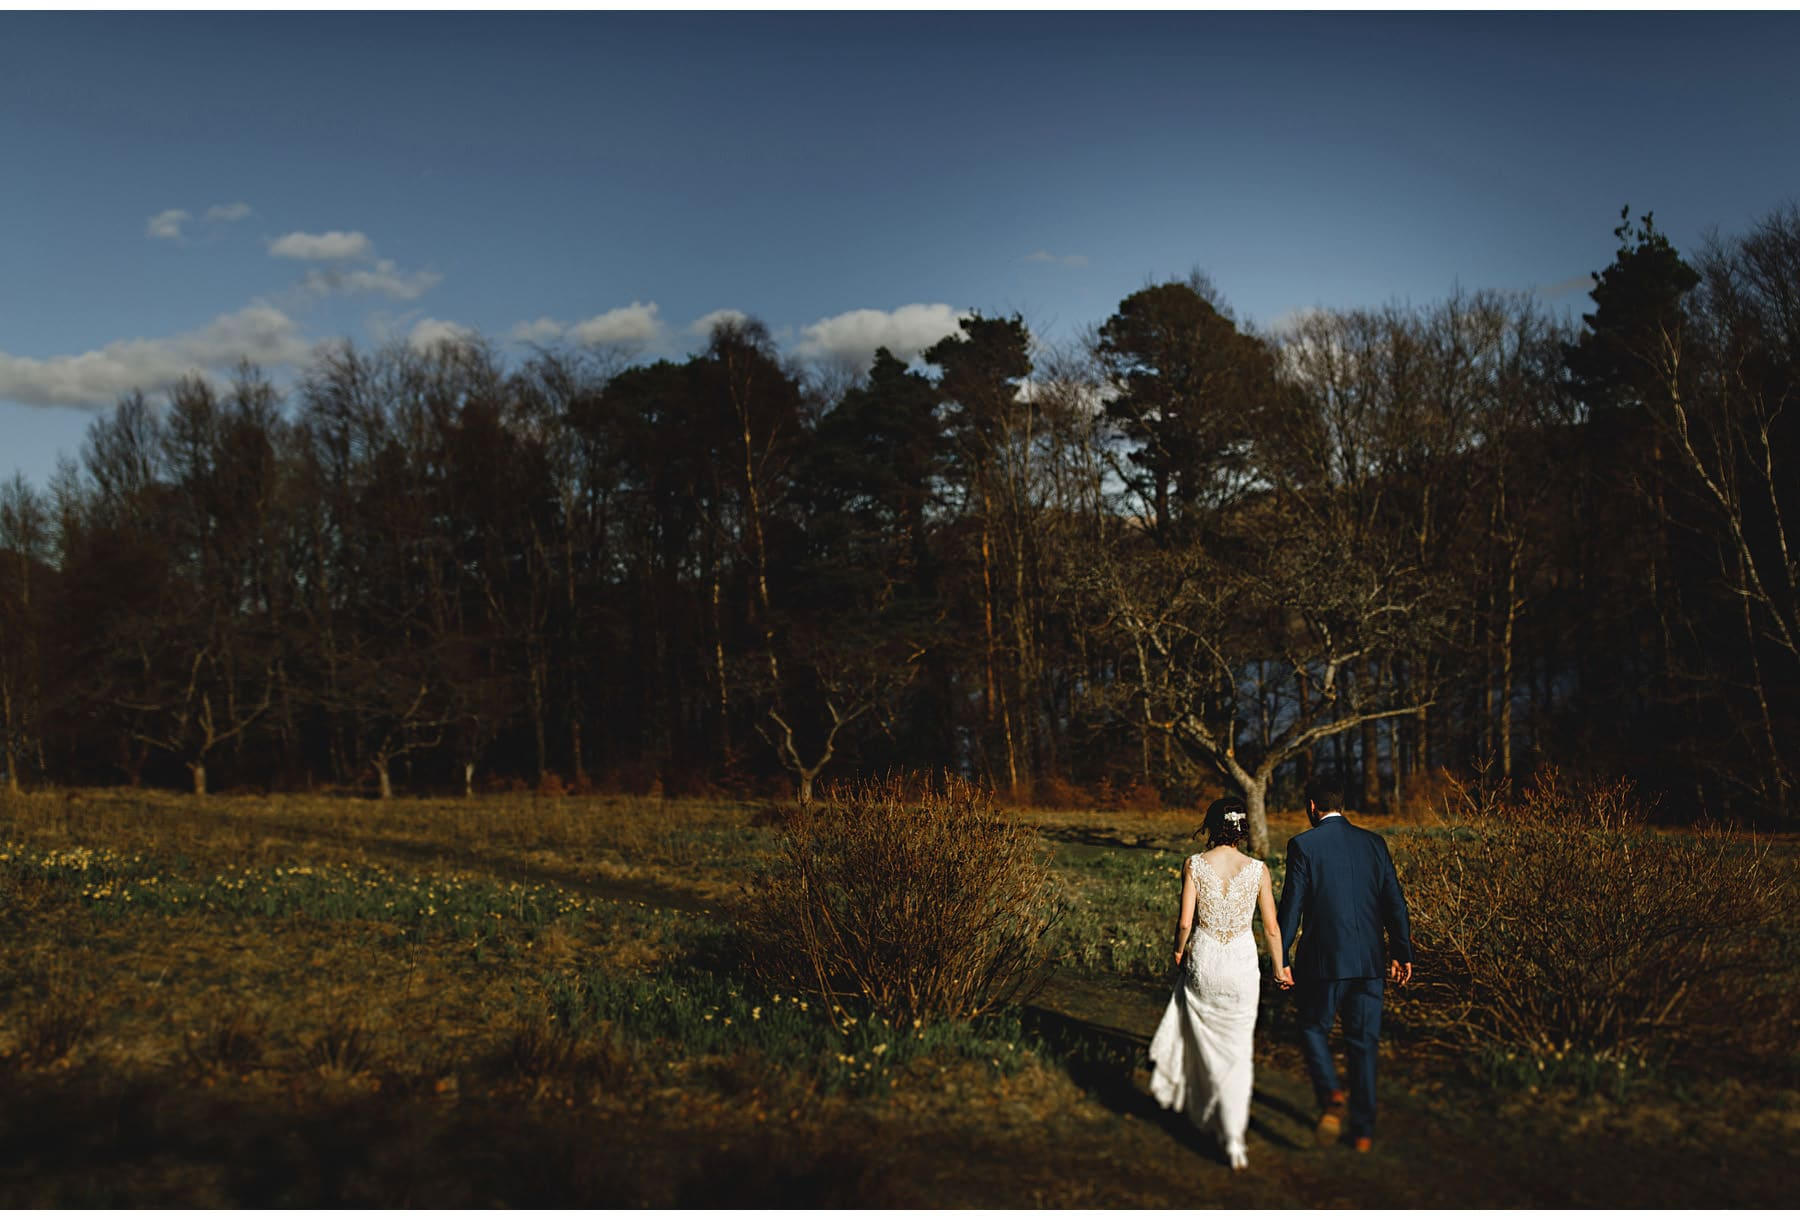 The bride & groom walking in the woods in the lake district